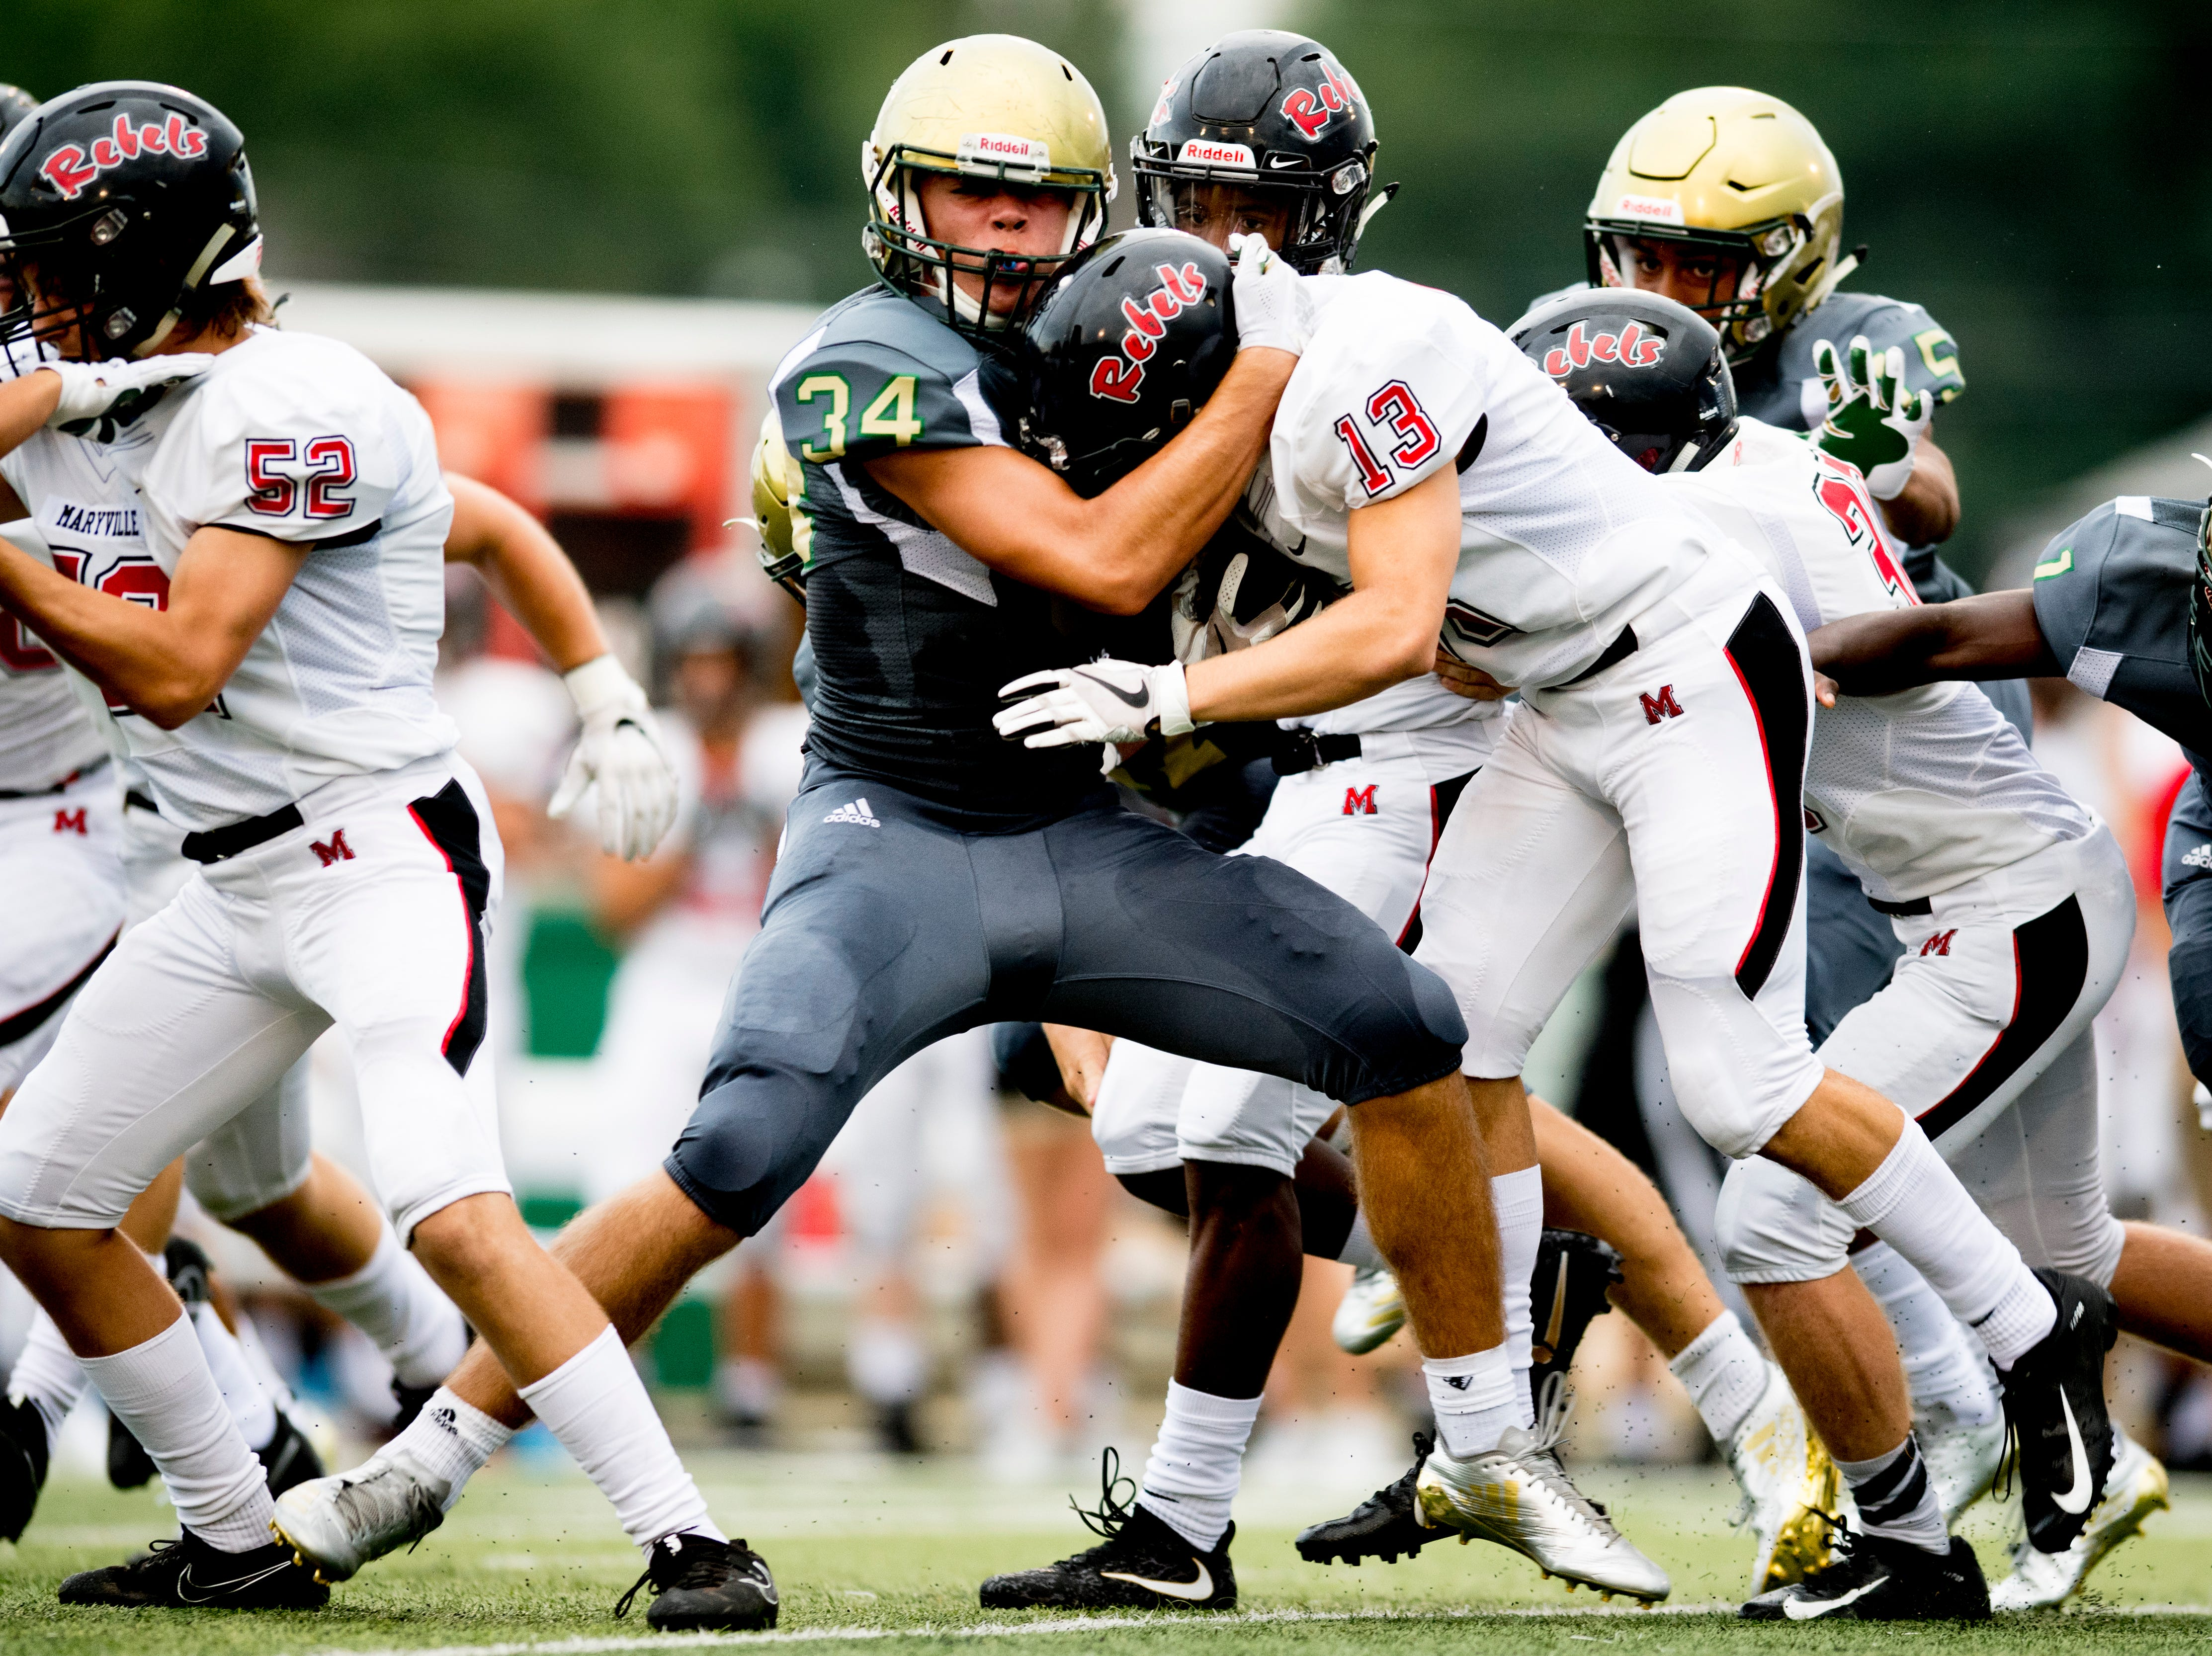 Catholic's Luke Davenport (34) takes down Maryville's Jackson Jett (13) during a football game between Maryville and Catholic at Catholic High School in Knoxville, Tennessee on Friday, August 17, 2018.